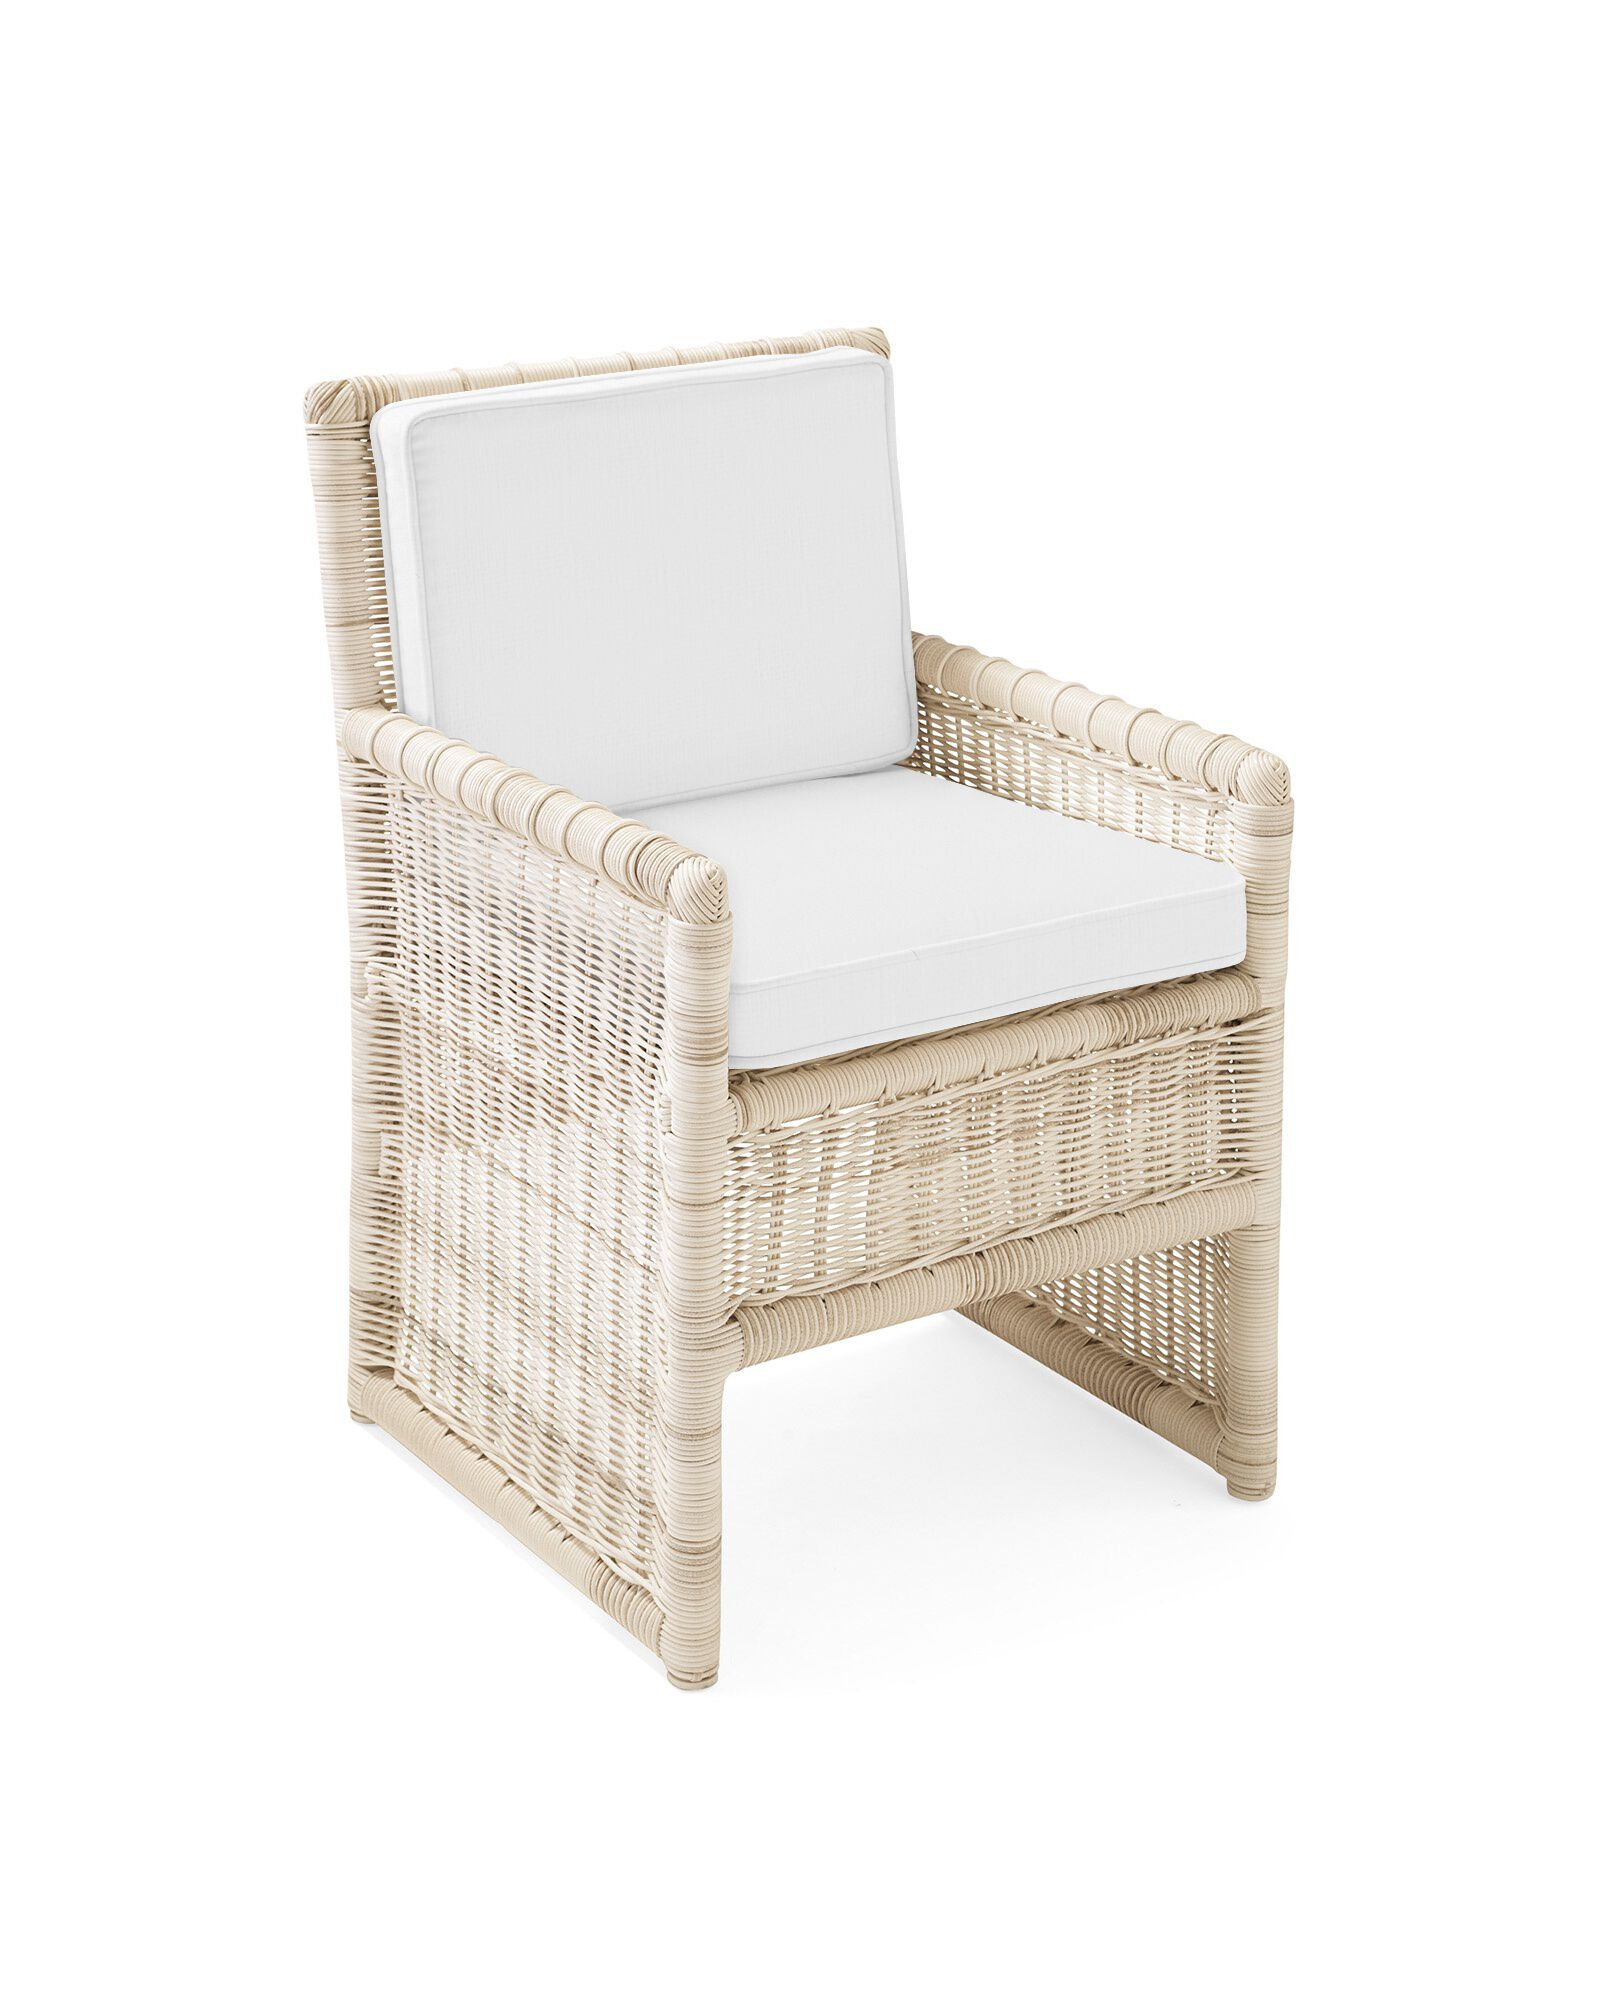 Cushion Cover for Pacifica Dining Chair, Perennials Basketweave White